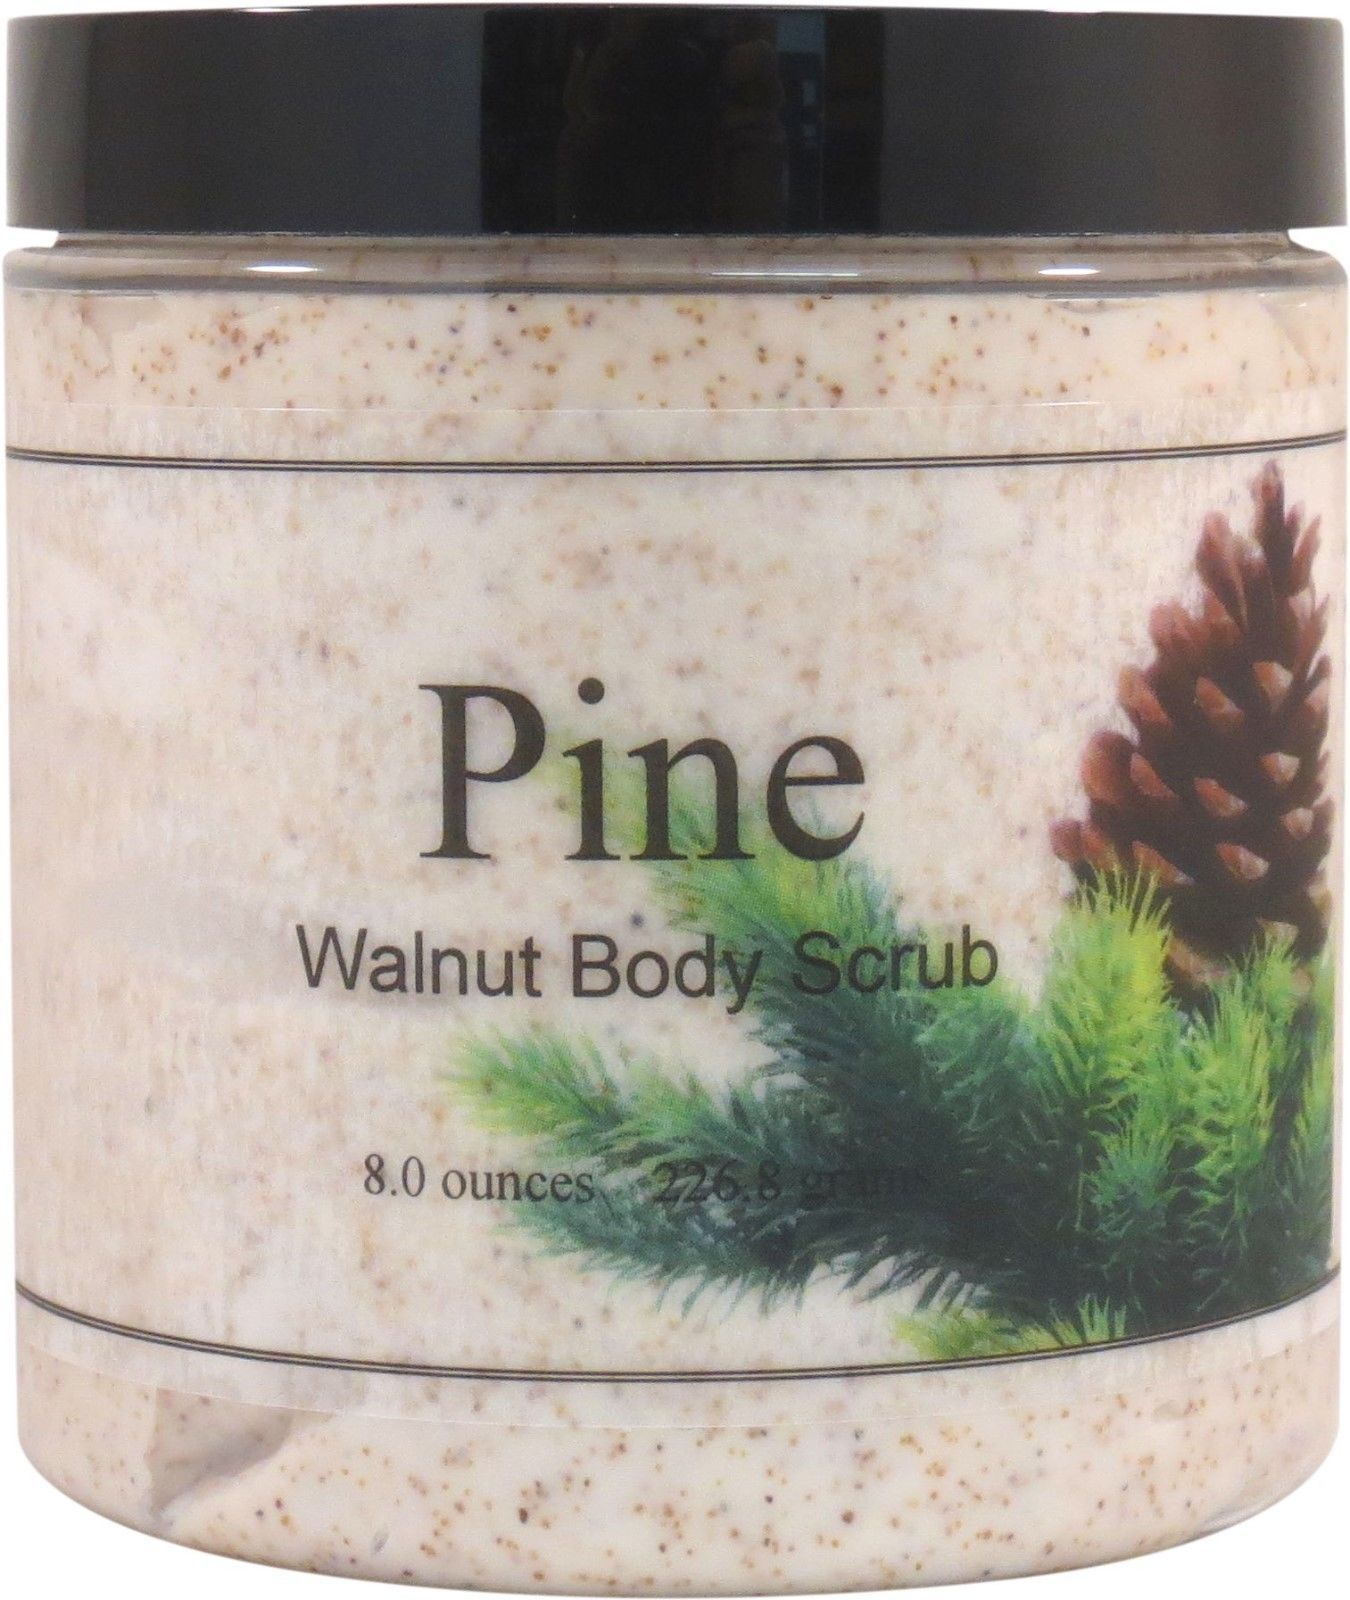 Pine Walnut Body Scrub